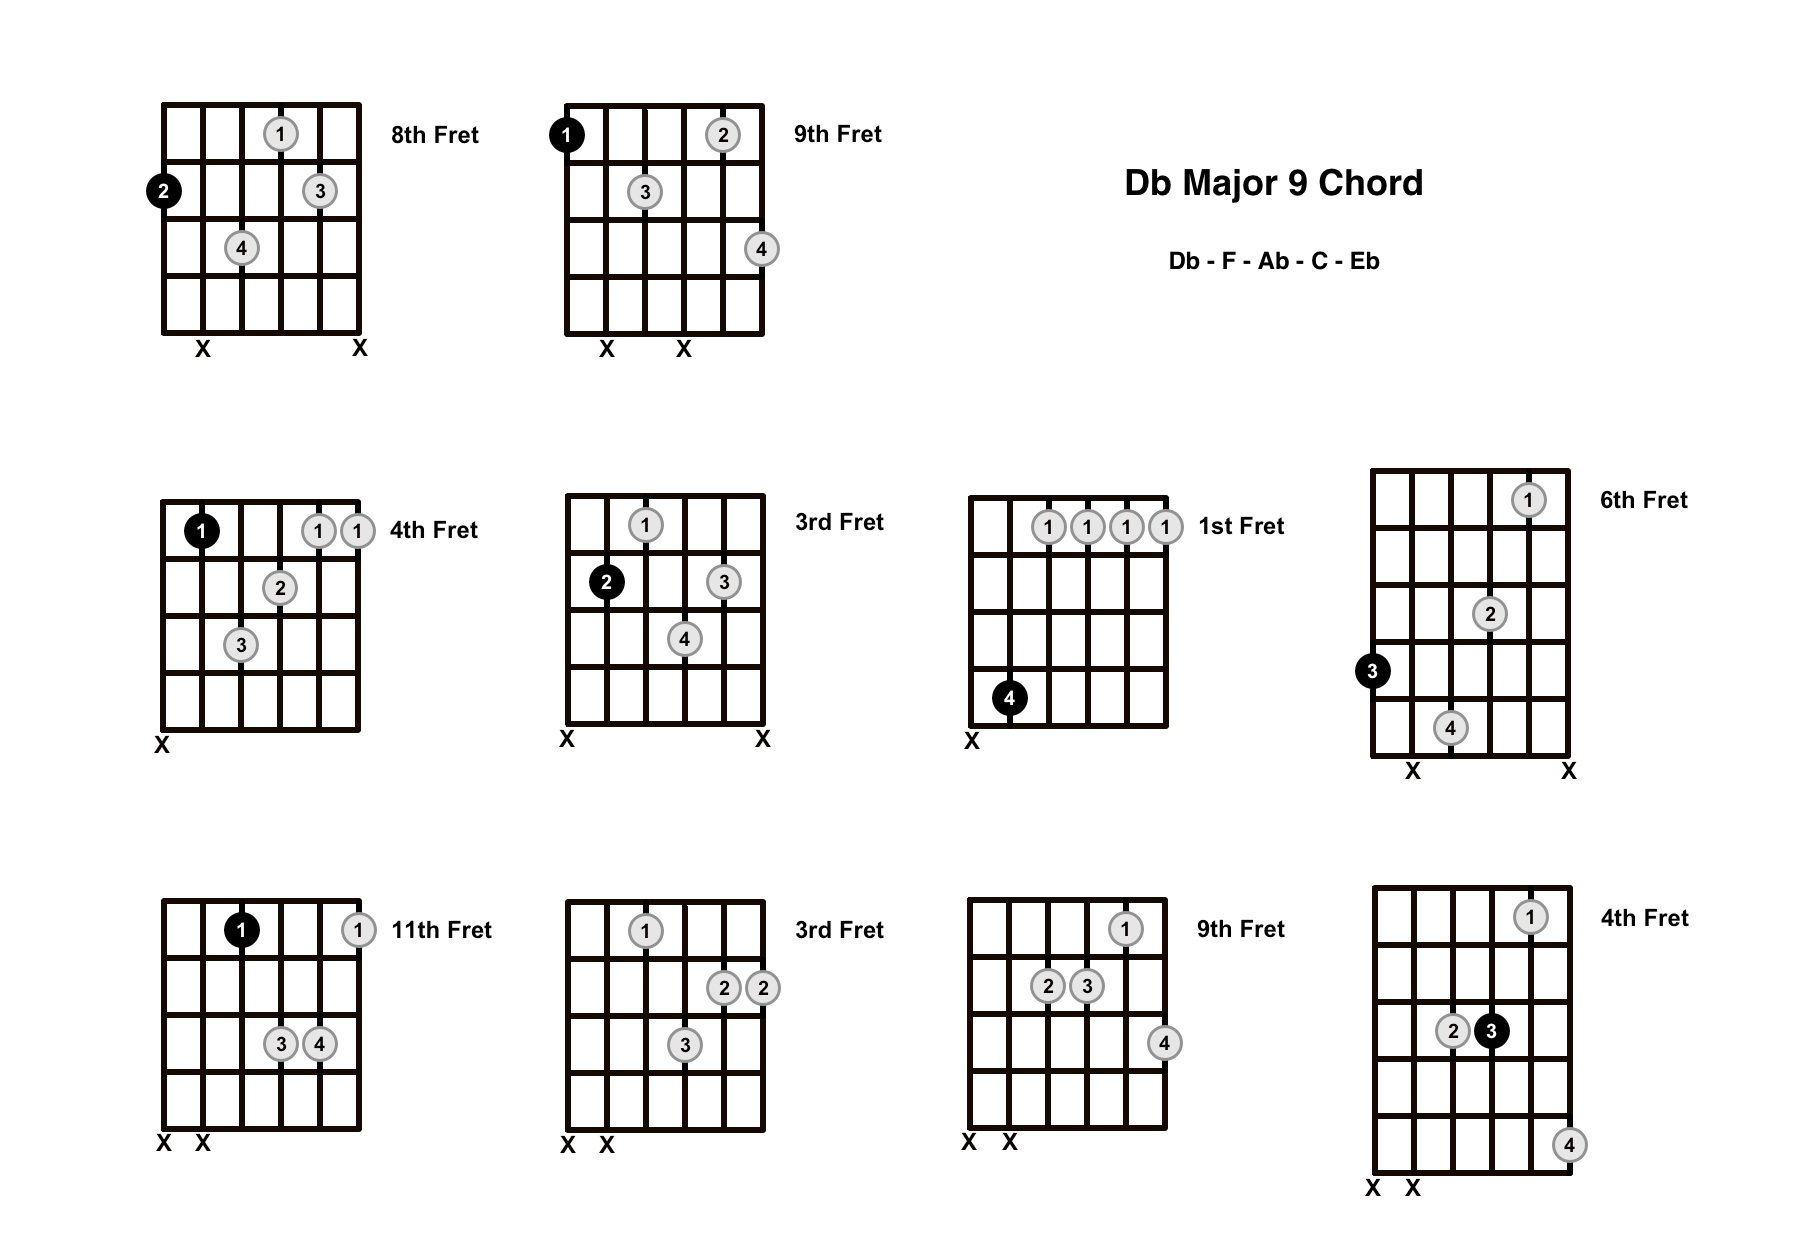 D Flat Major 9 Chord On The Guitar (Db Maj 9) – Diagrams, Finger Positions and Theory